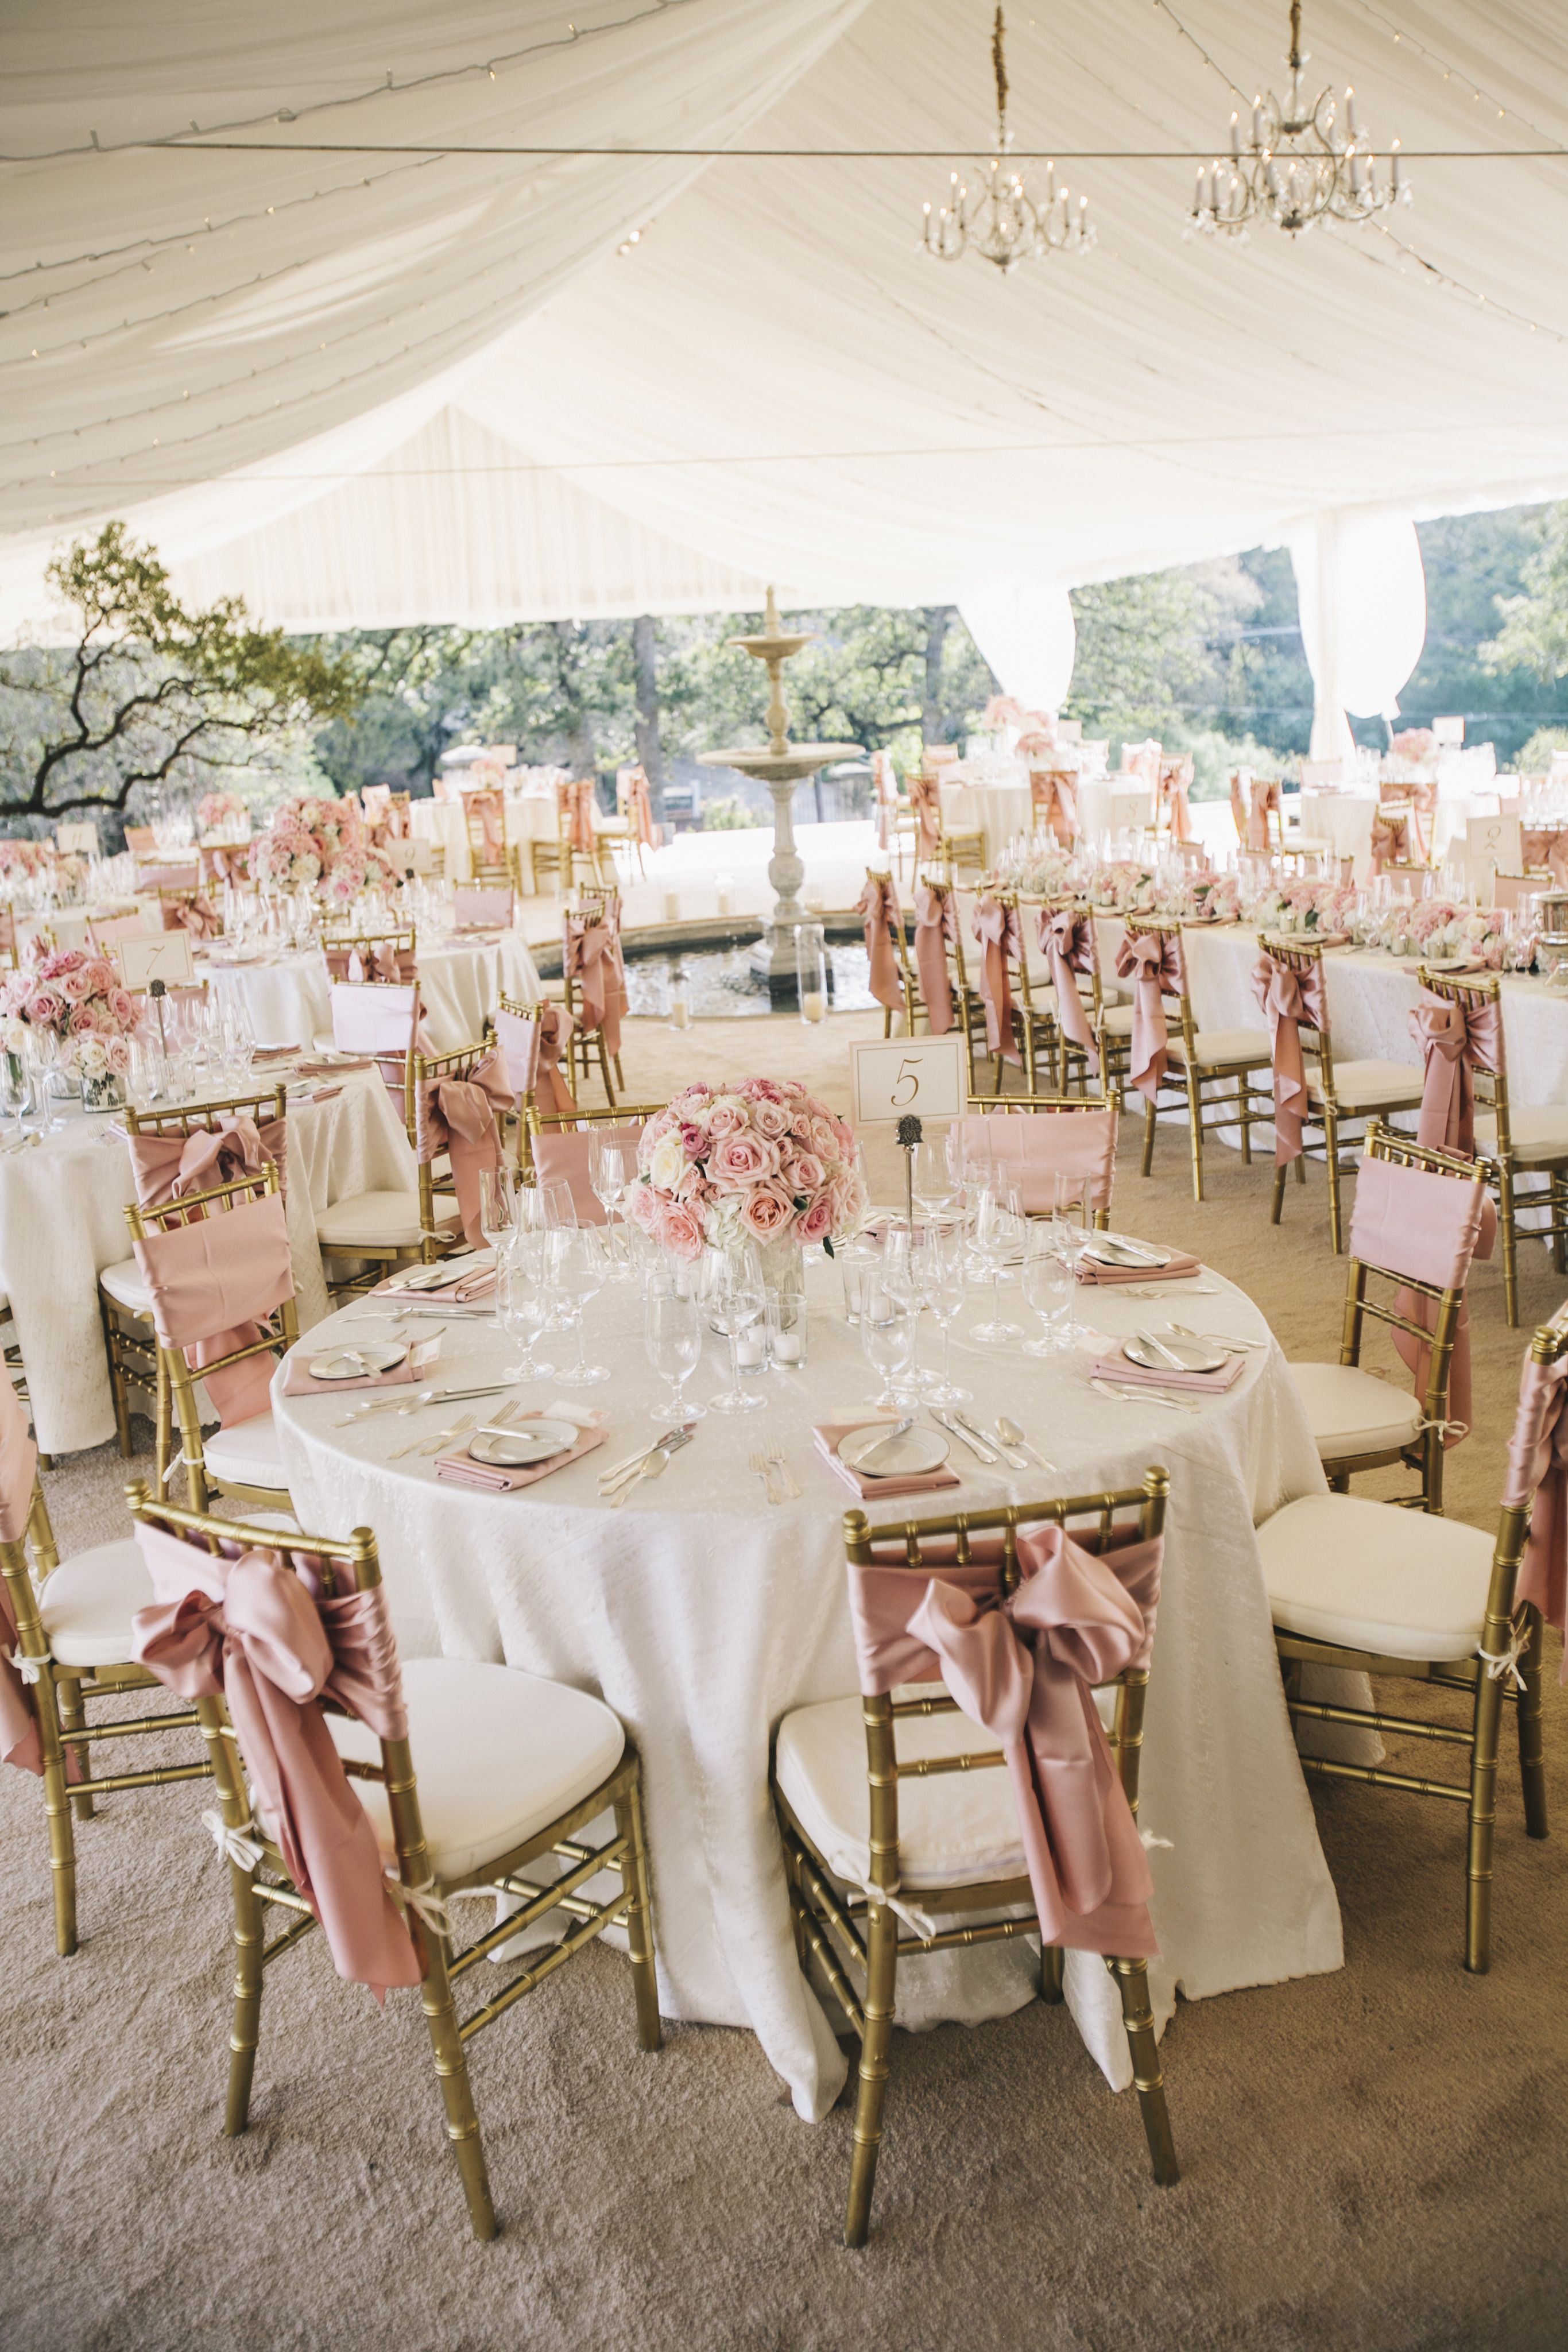 107 best Events in Tents images on Pinterest | Amazing weddings ...